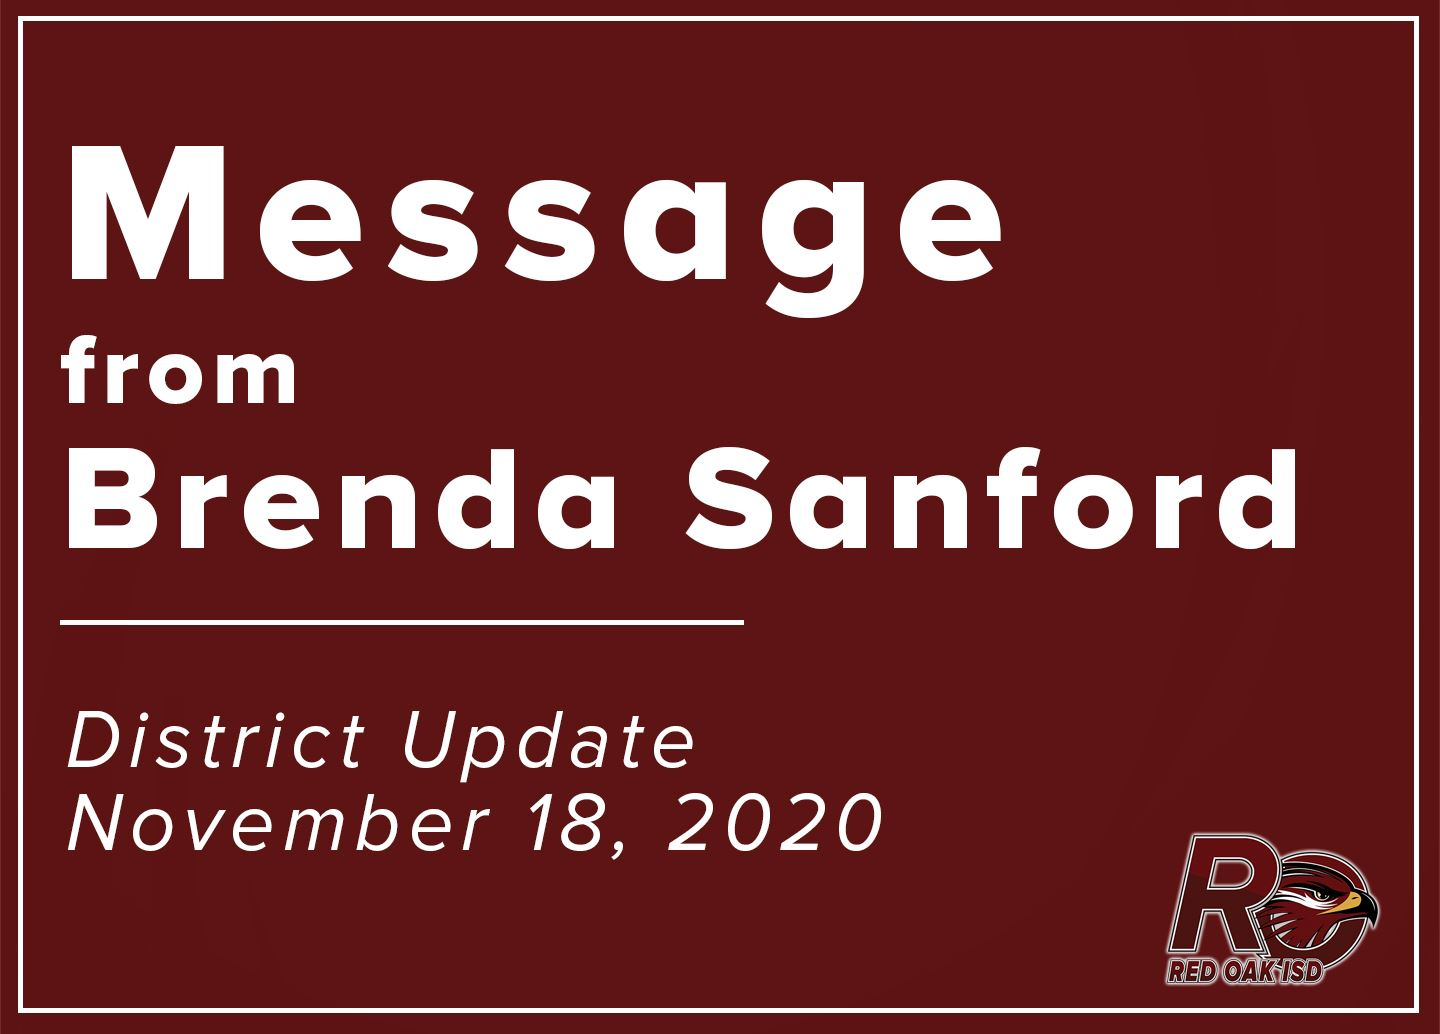 Message from Brenda Sanford - District Update on Nov. 18, 2020